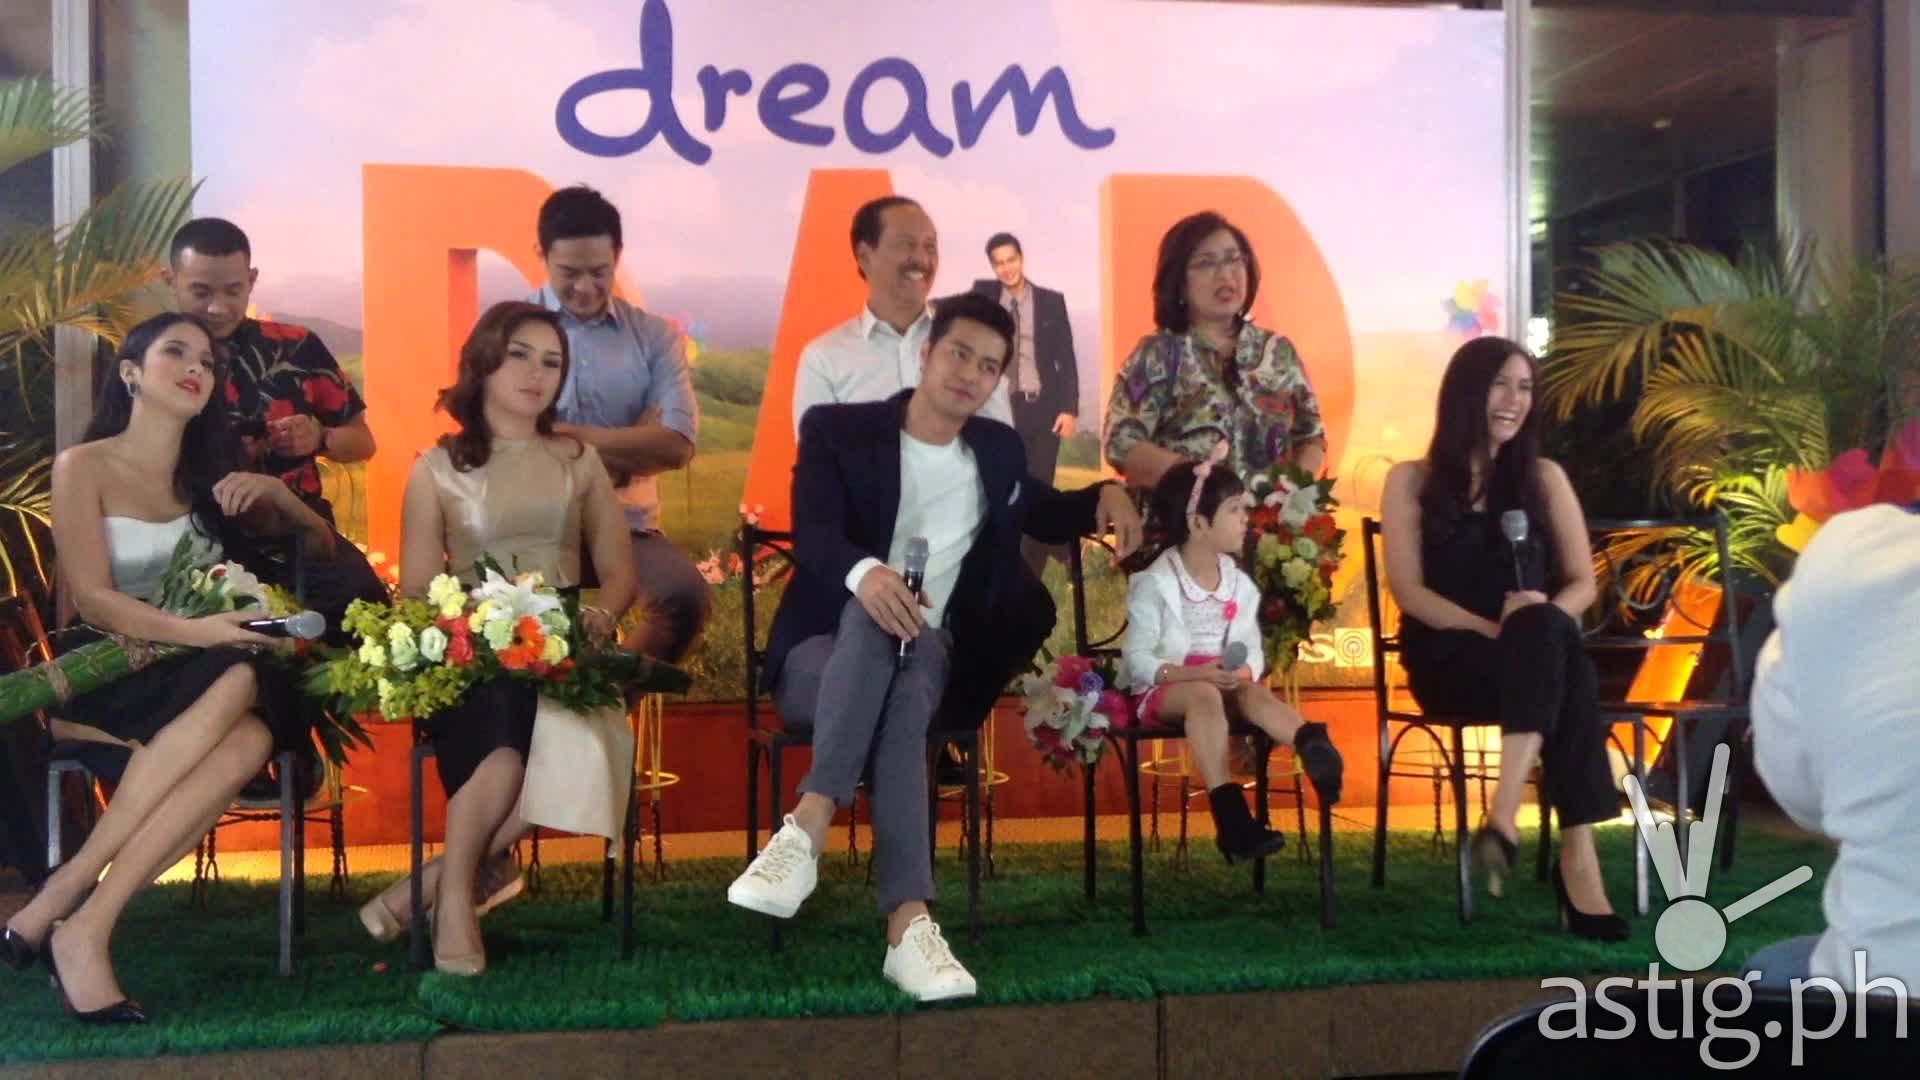 Dream Dad cast Maxene Magalona, Beauty Gonzalez, and Zanjoe Marudo